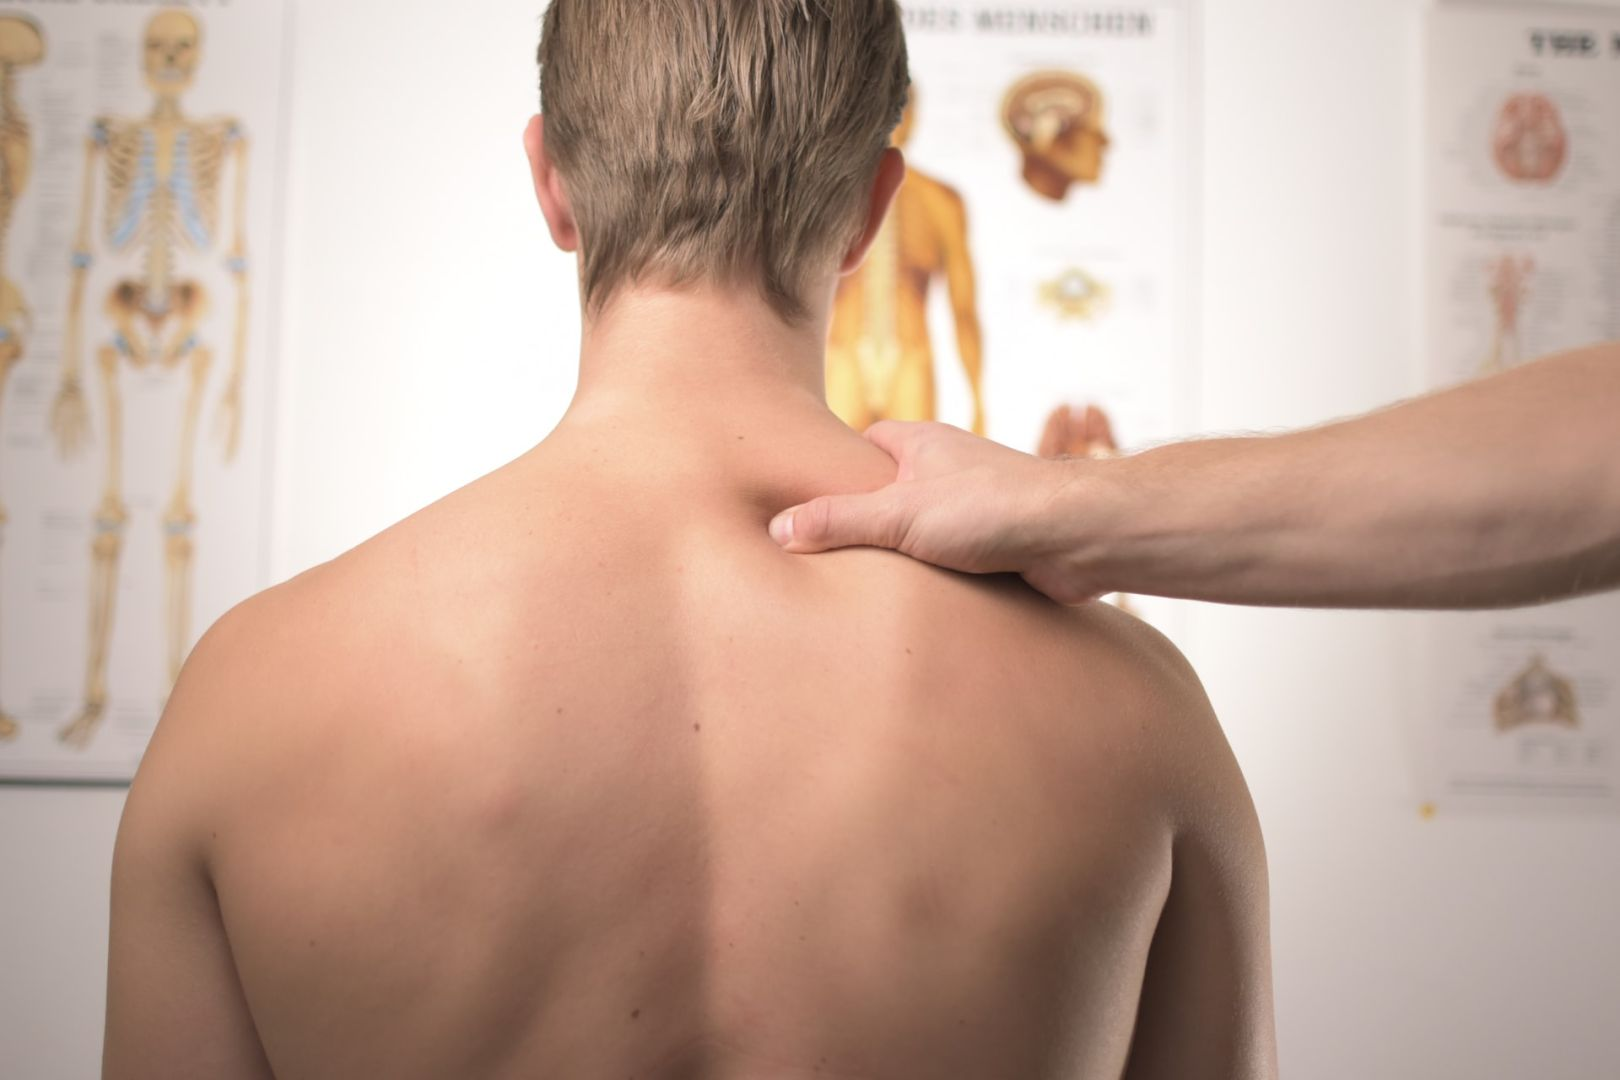 5 most common back injuries from road traffic accident with Fletchers Solicitors